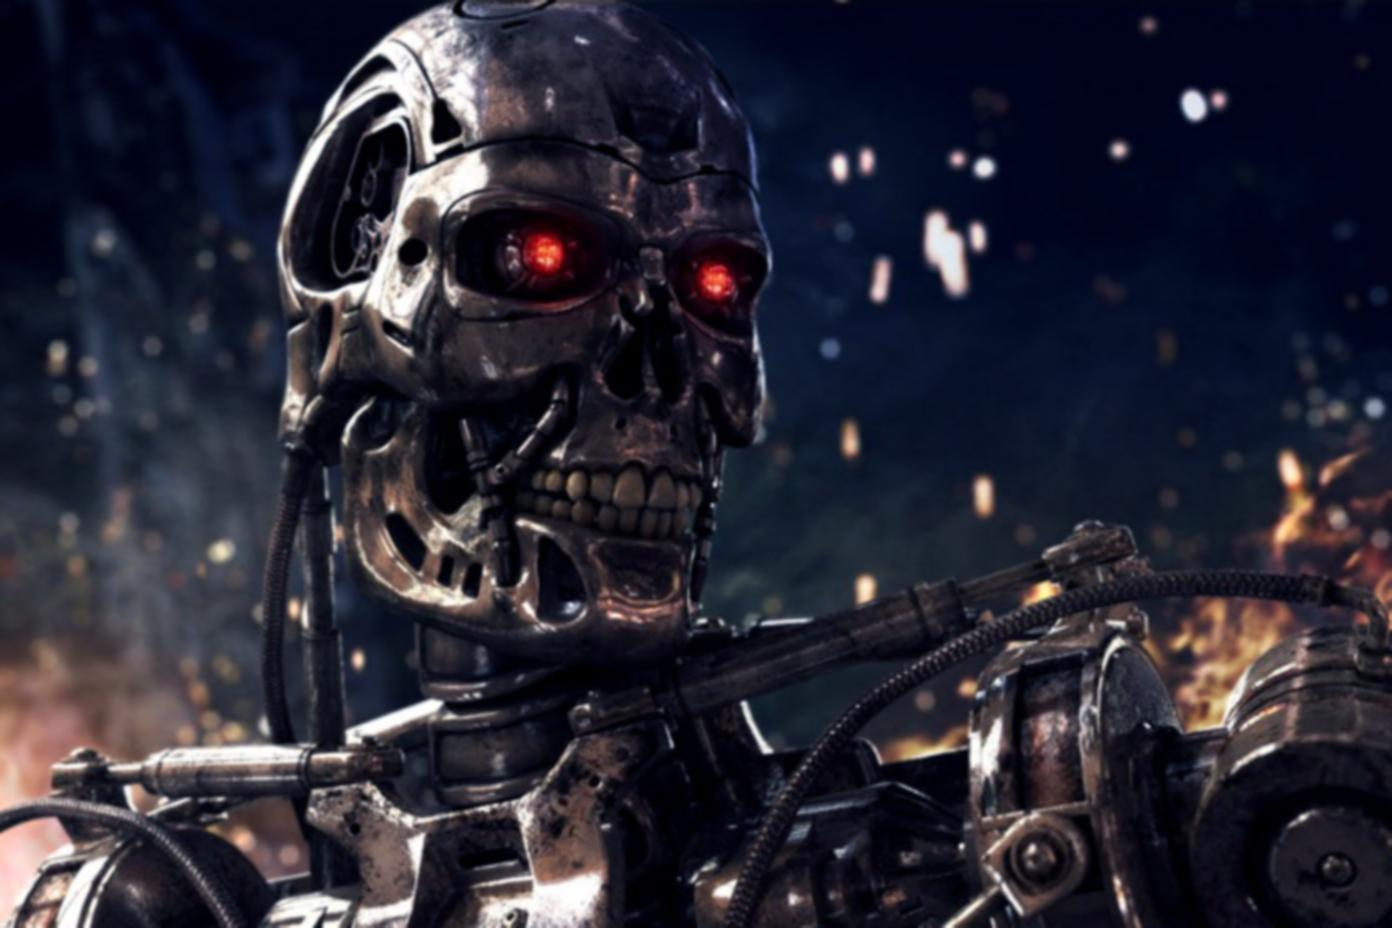 Terminator 6 Report Reveals Dani Ramos Details and Mexico City Shoot